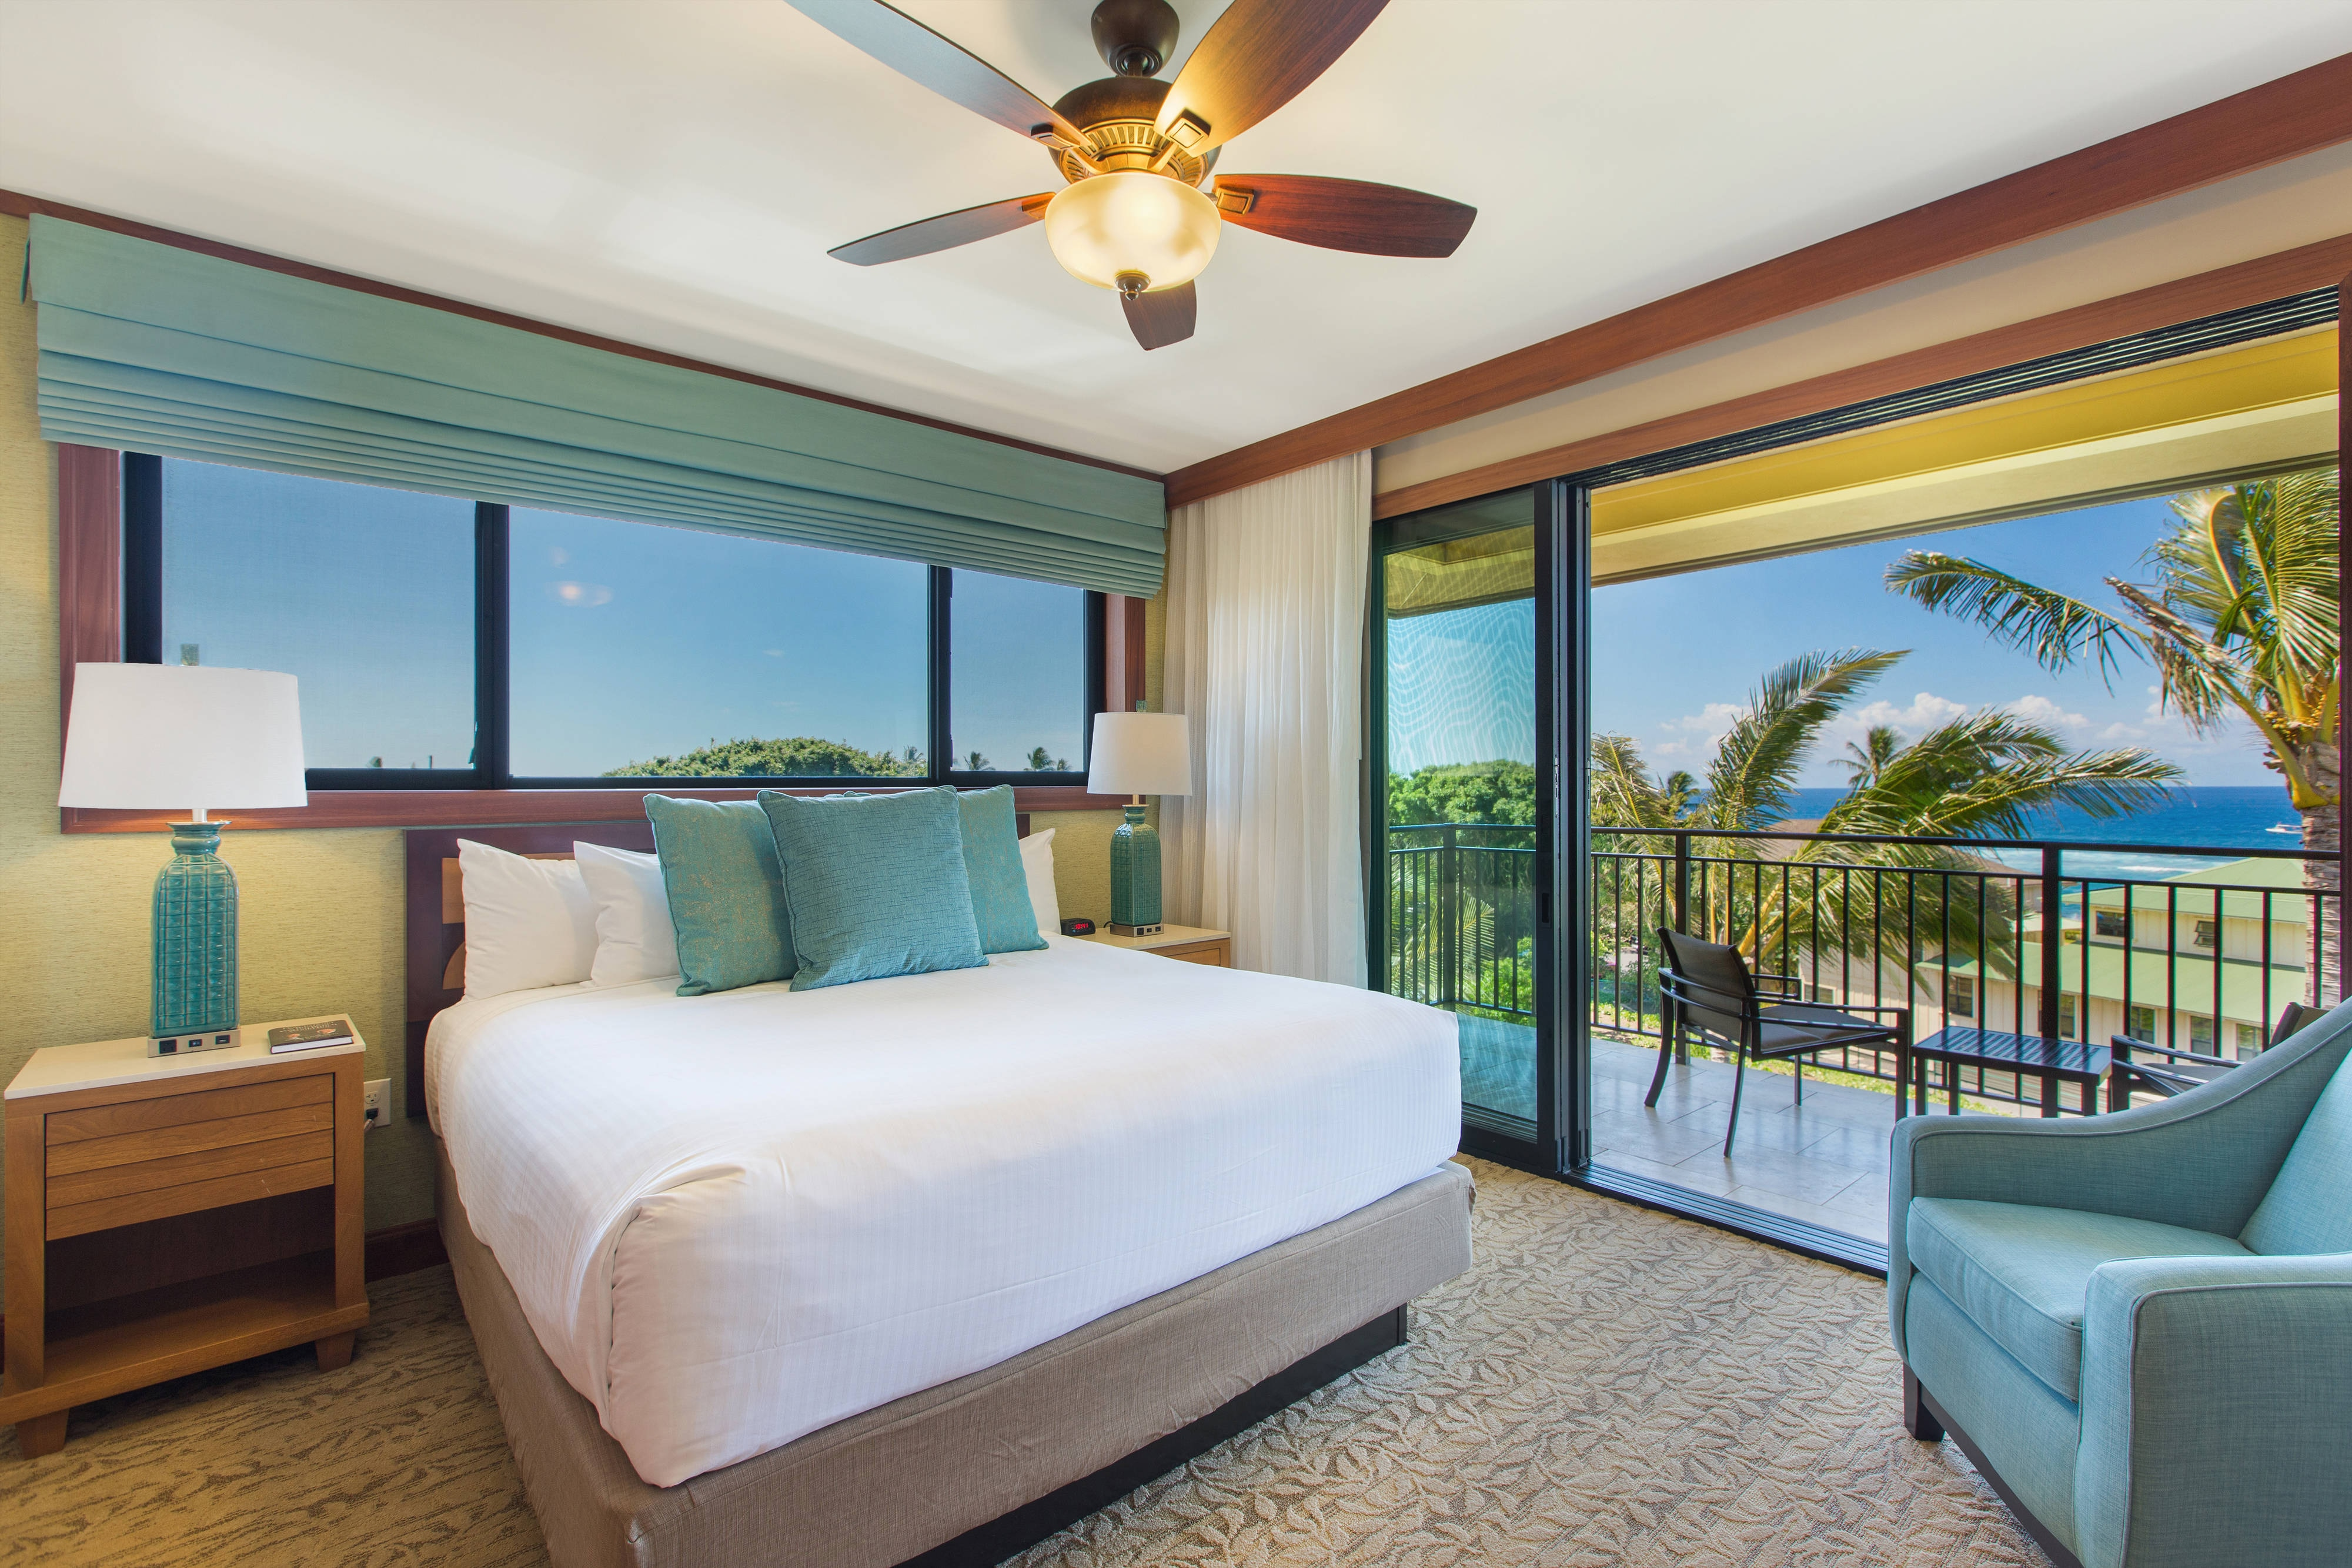 Two-Bedroom Villa Ocean View – Master Bedroom